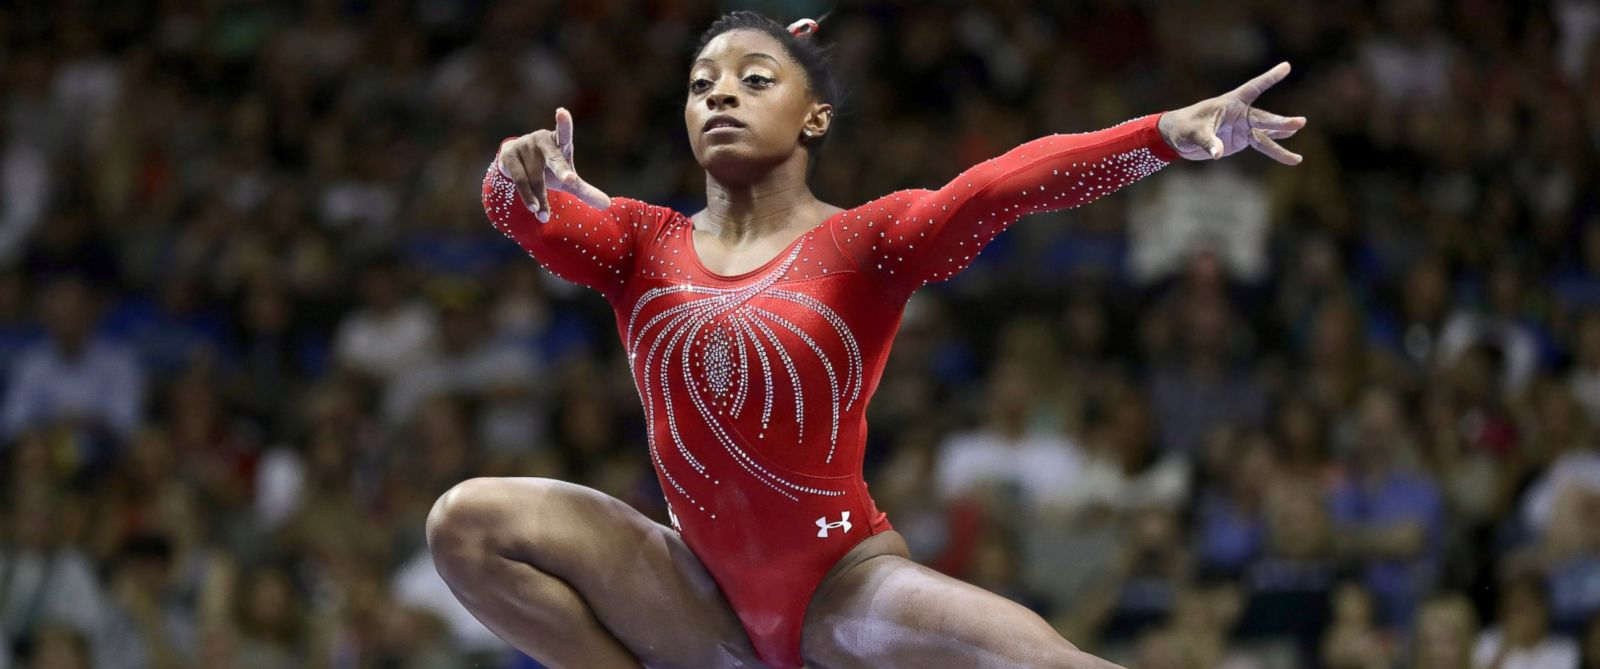 how tall is olympic biles